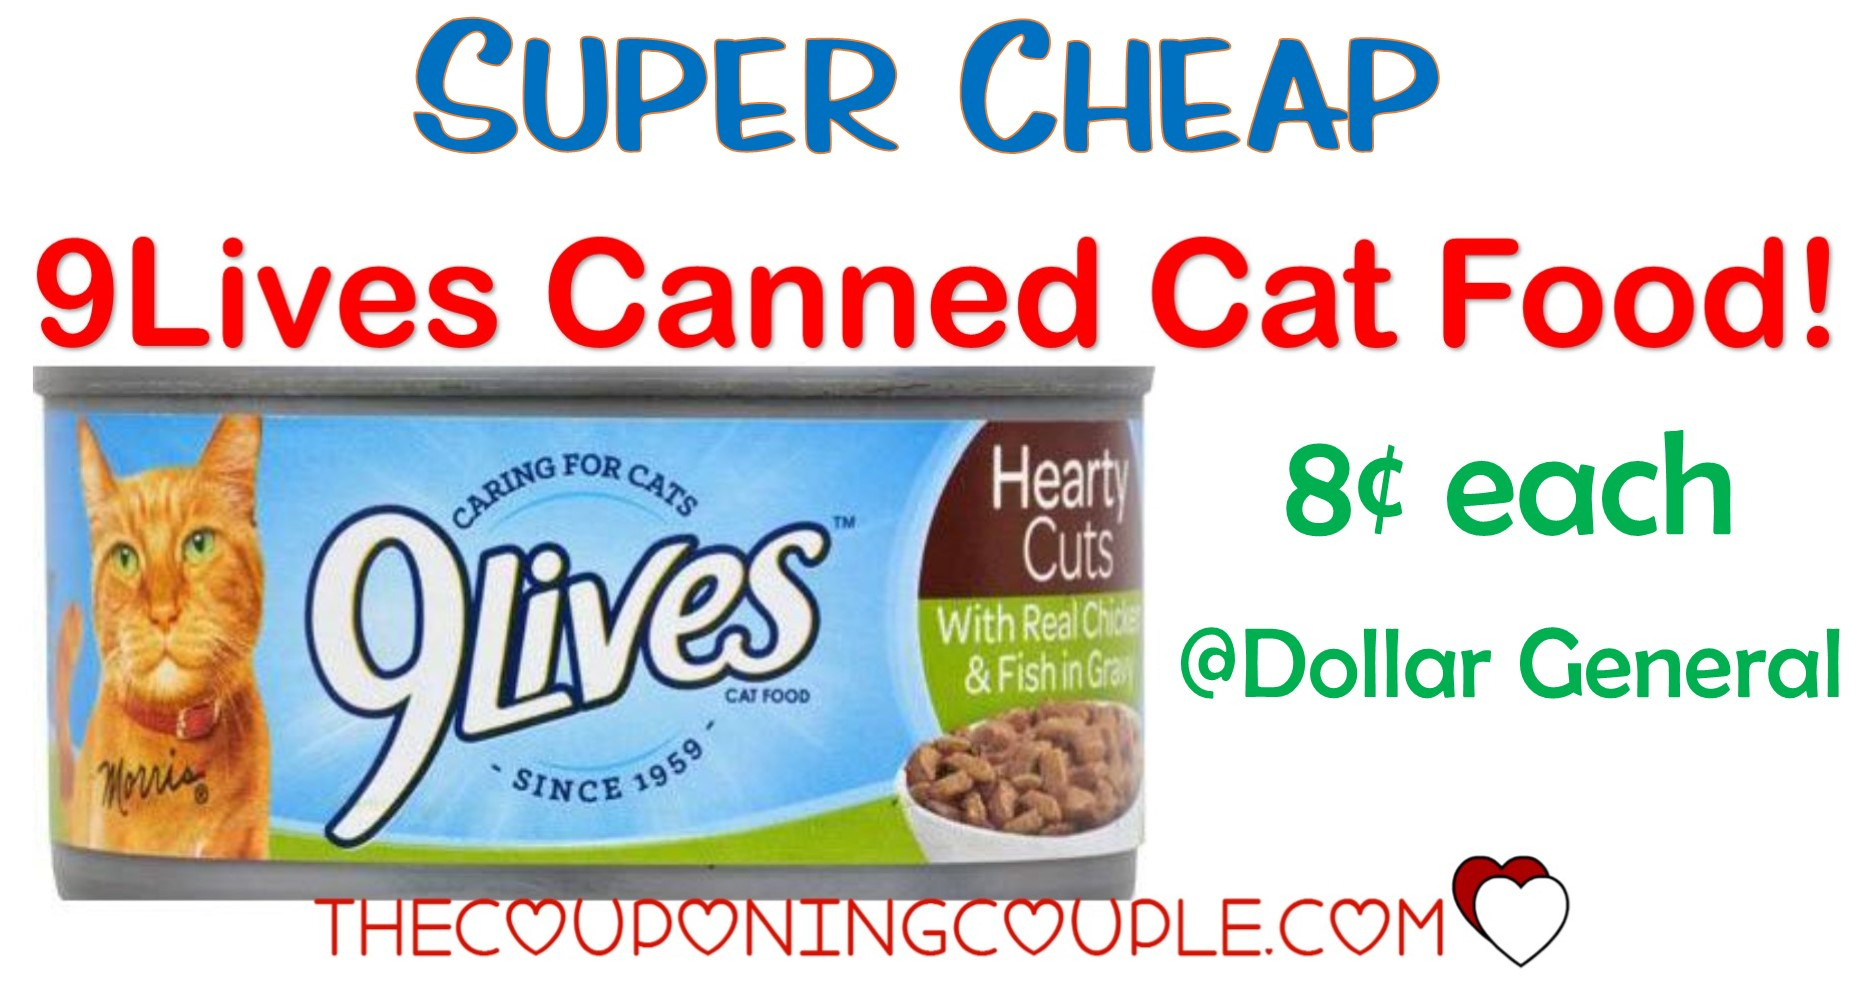 Super Cheap 9Lives Canned Cat Food @ Dollar General! $0.08 Per Can! - Free Printable 9 Lives Cat Food Coupons